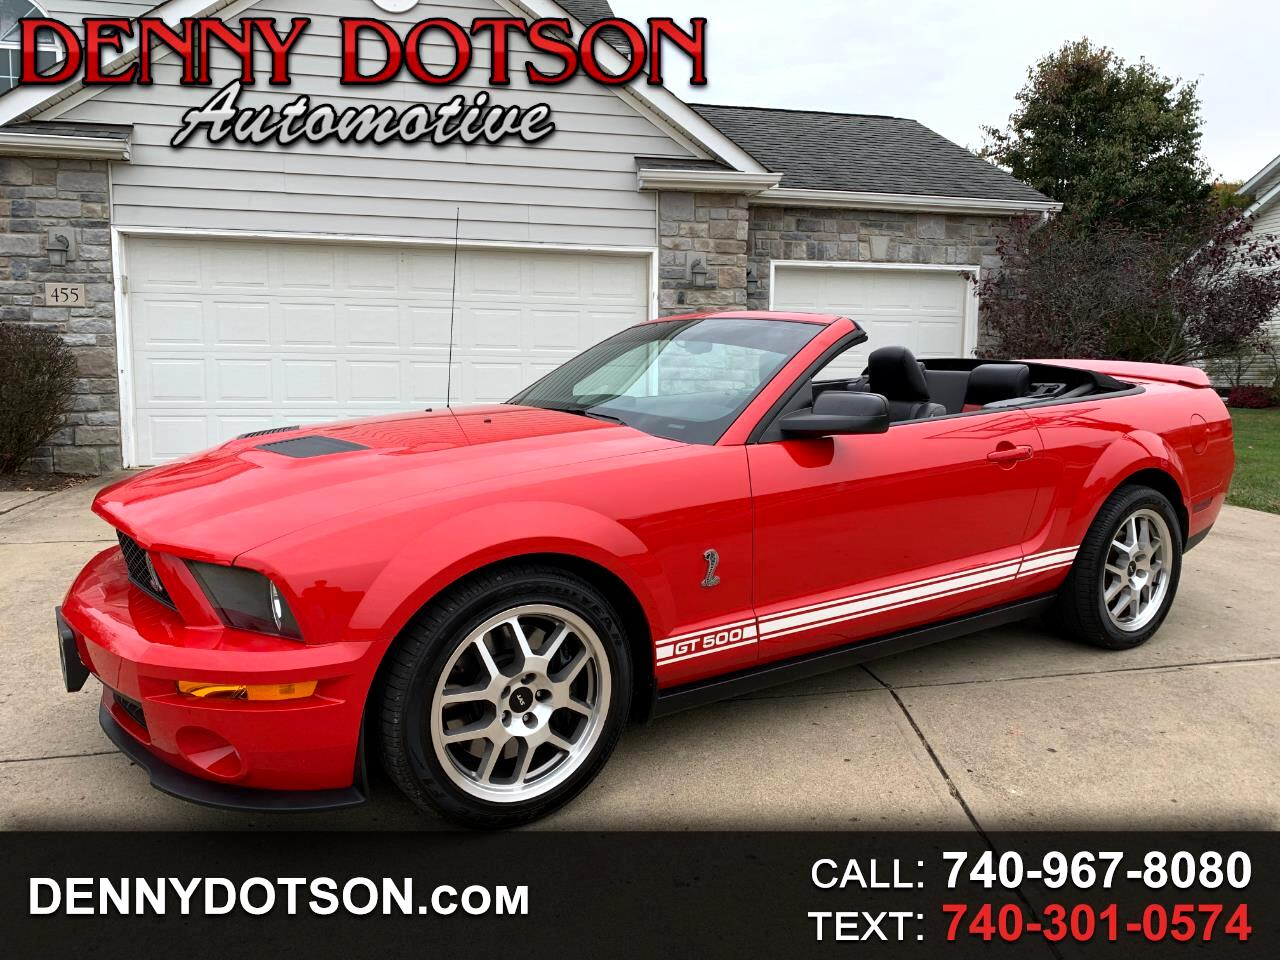 2007 Ford Mustang 2dr Conv Shelby GT500